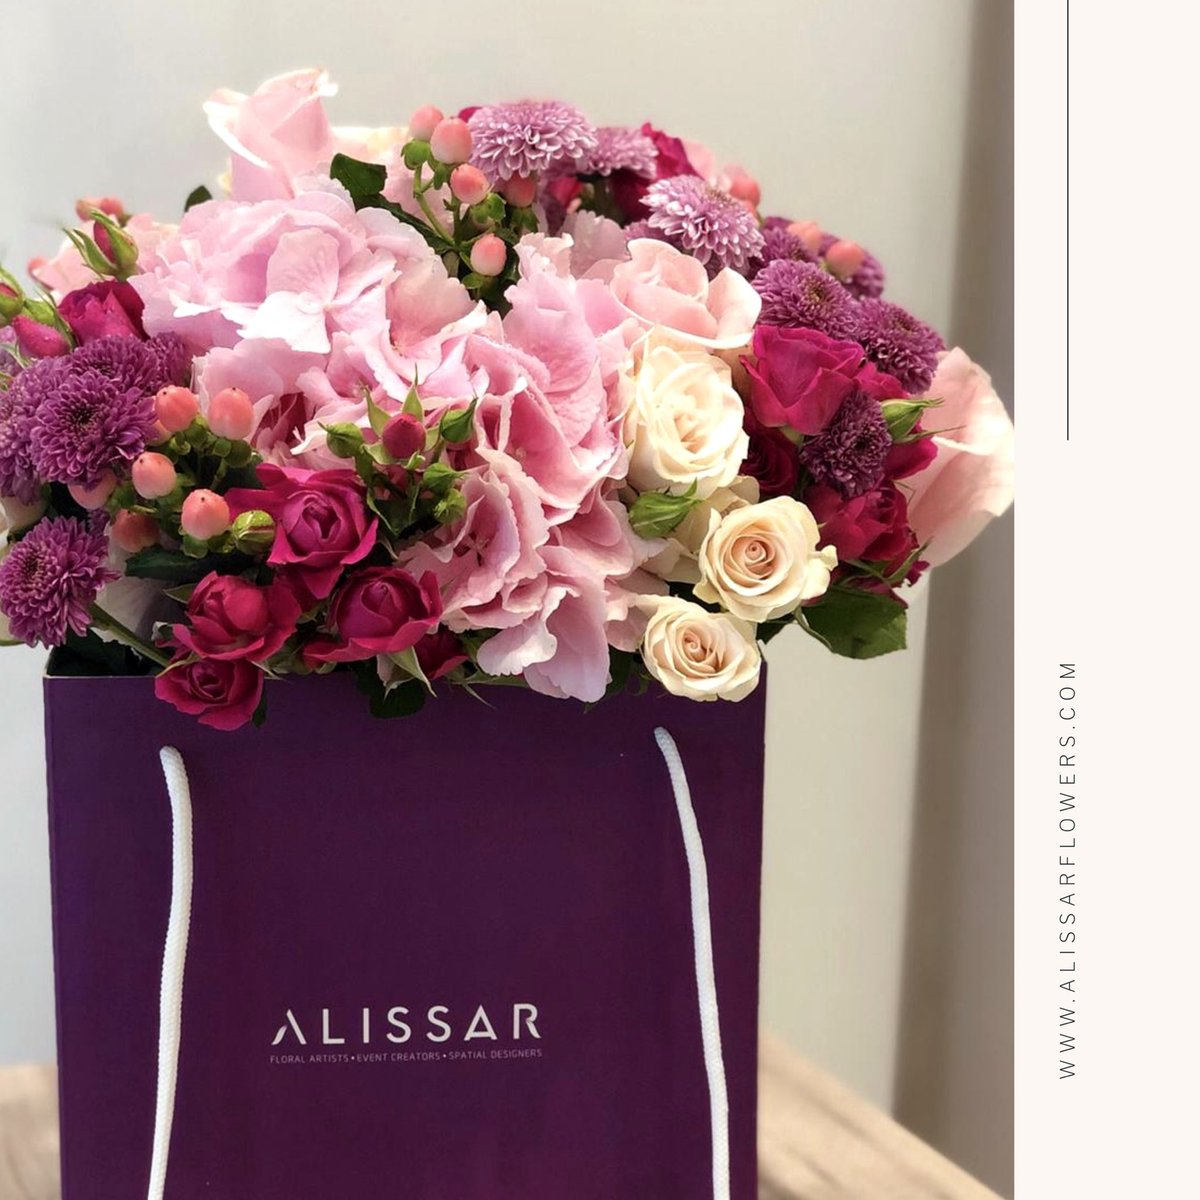 Elegant floral arrangement that will dazzle your loved one's.... order now and we will deliver https://t.co/fPsnG4NSCp https://t.co/38D0Ns0TnD